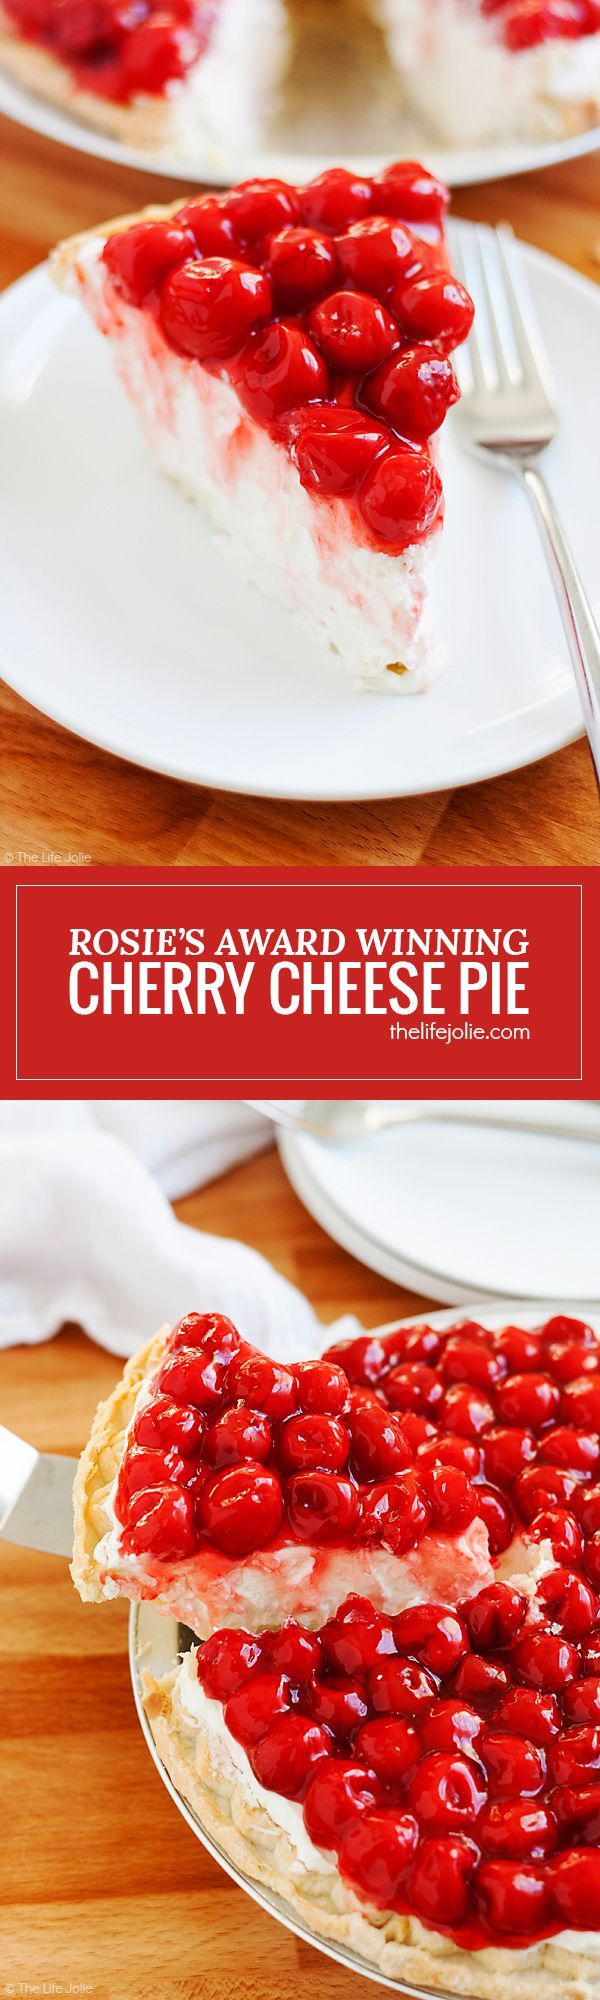 Rosie's Award Winning Cherry Cheese Pie is a favorite family recipe- it is insanely easy and heavy cream, cream cheese, vanilla, confectioner's sugar and cherries make up the minimal ingredients. It looks gorgeous on any dessert tables, especially for the